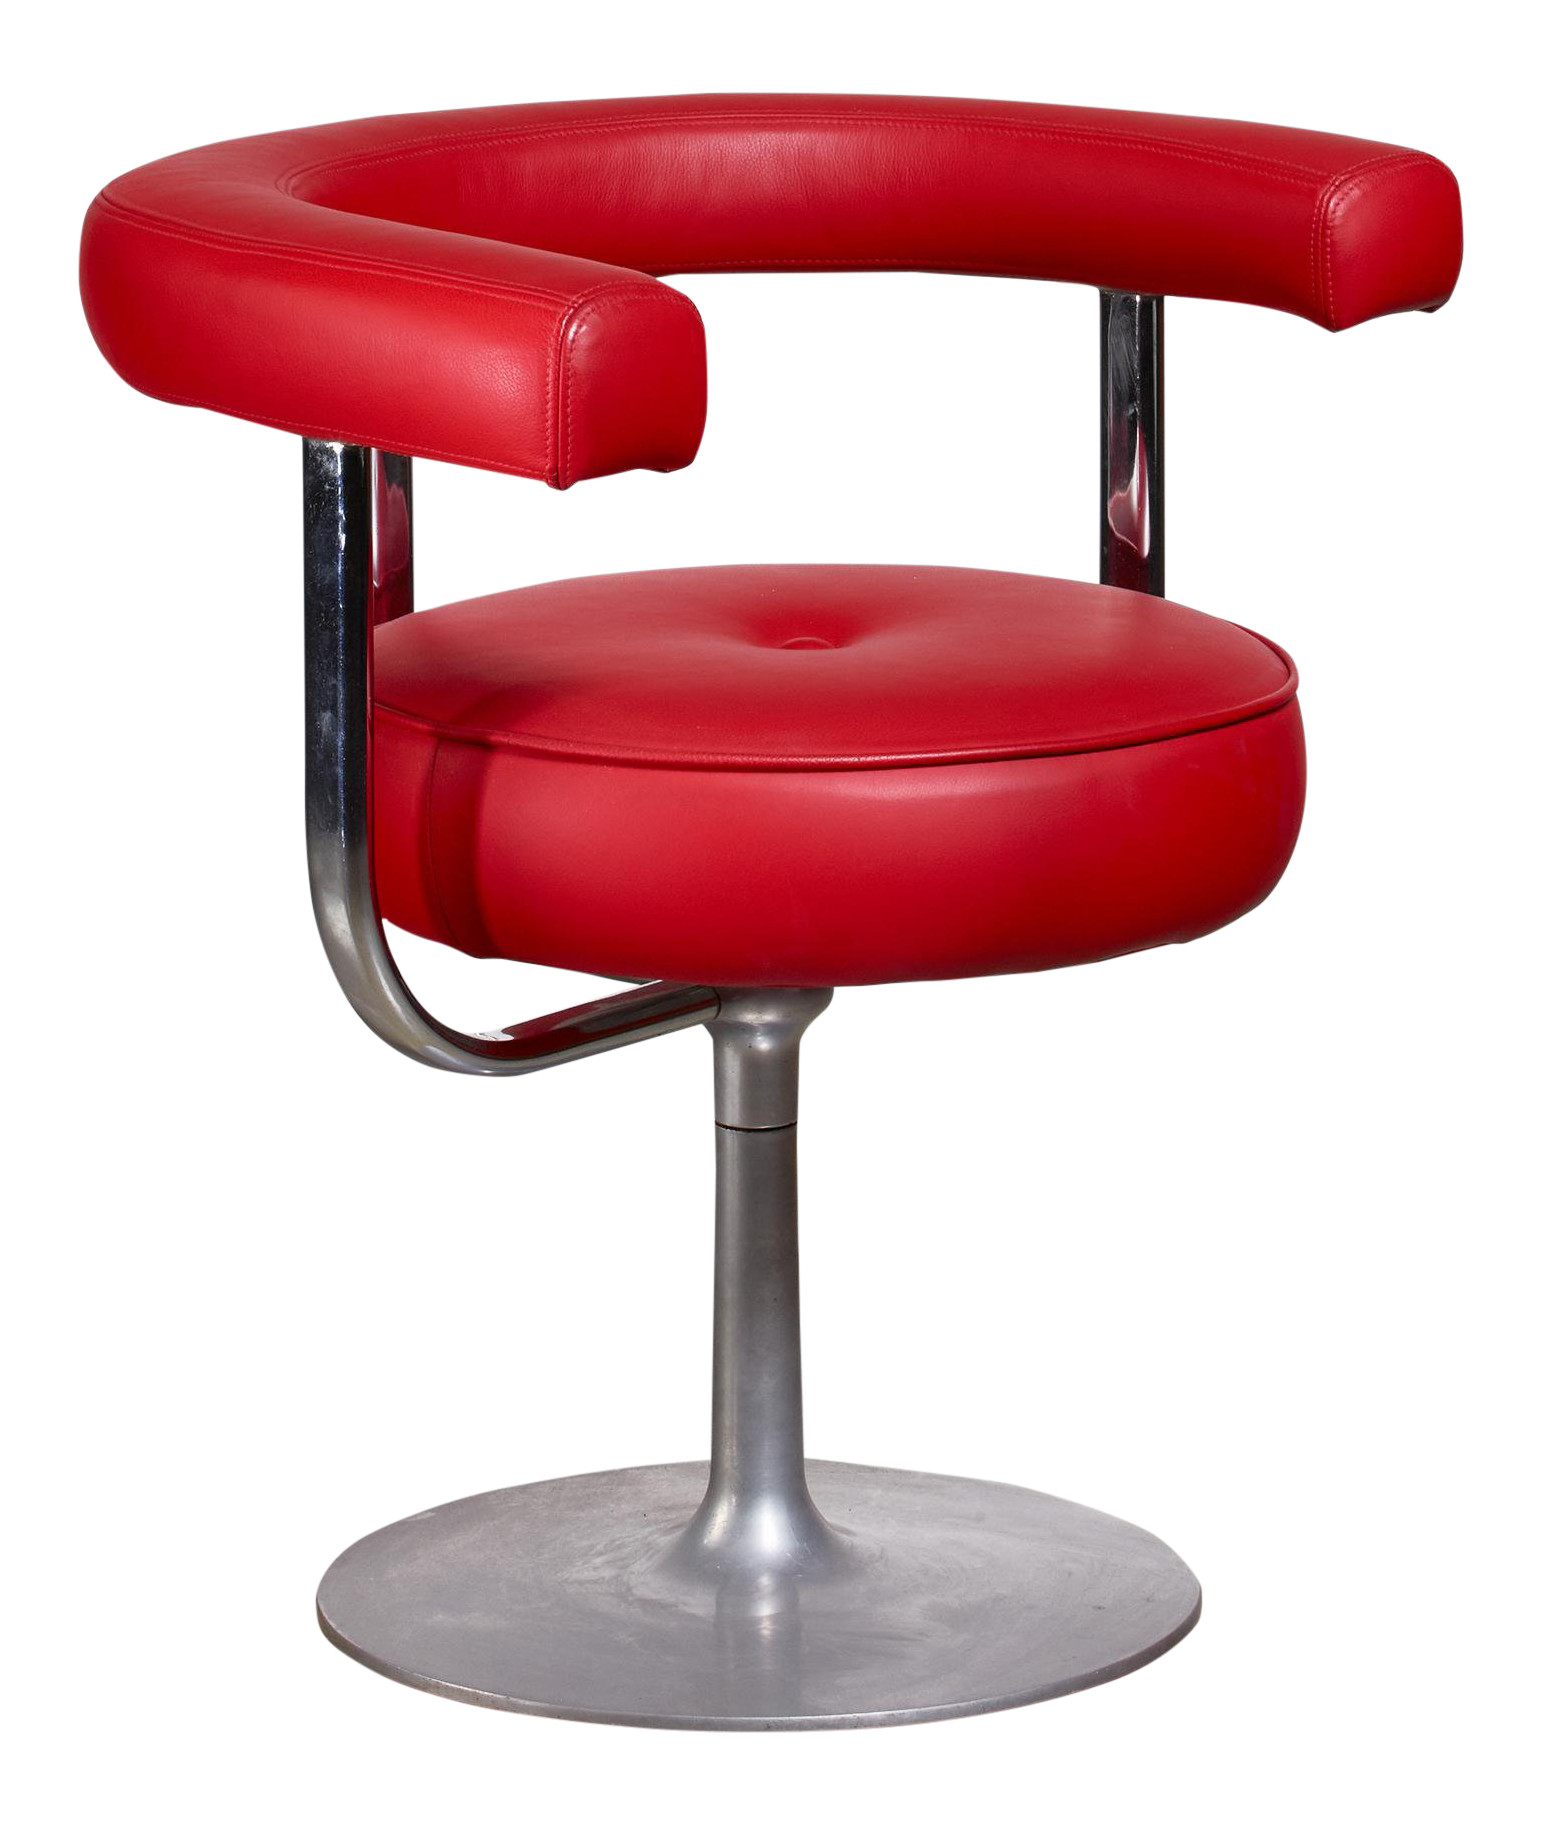 Astonishing Lovely Esko Pajamies Metal And Red Leather Desk Chair For Theyellowbook Wood Chair Design Ideas Theyellowbookinfo